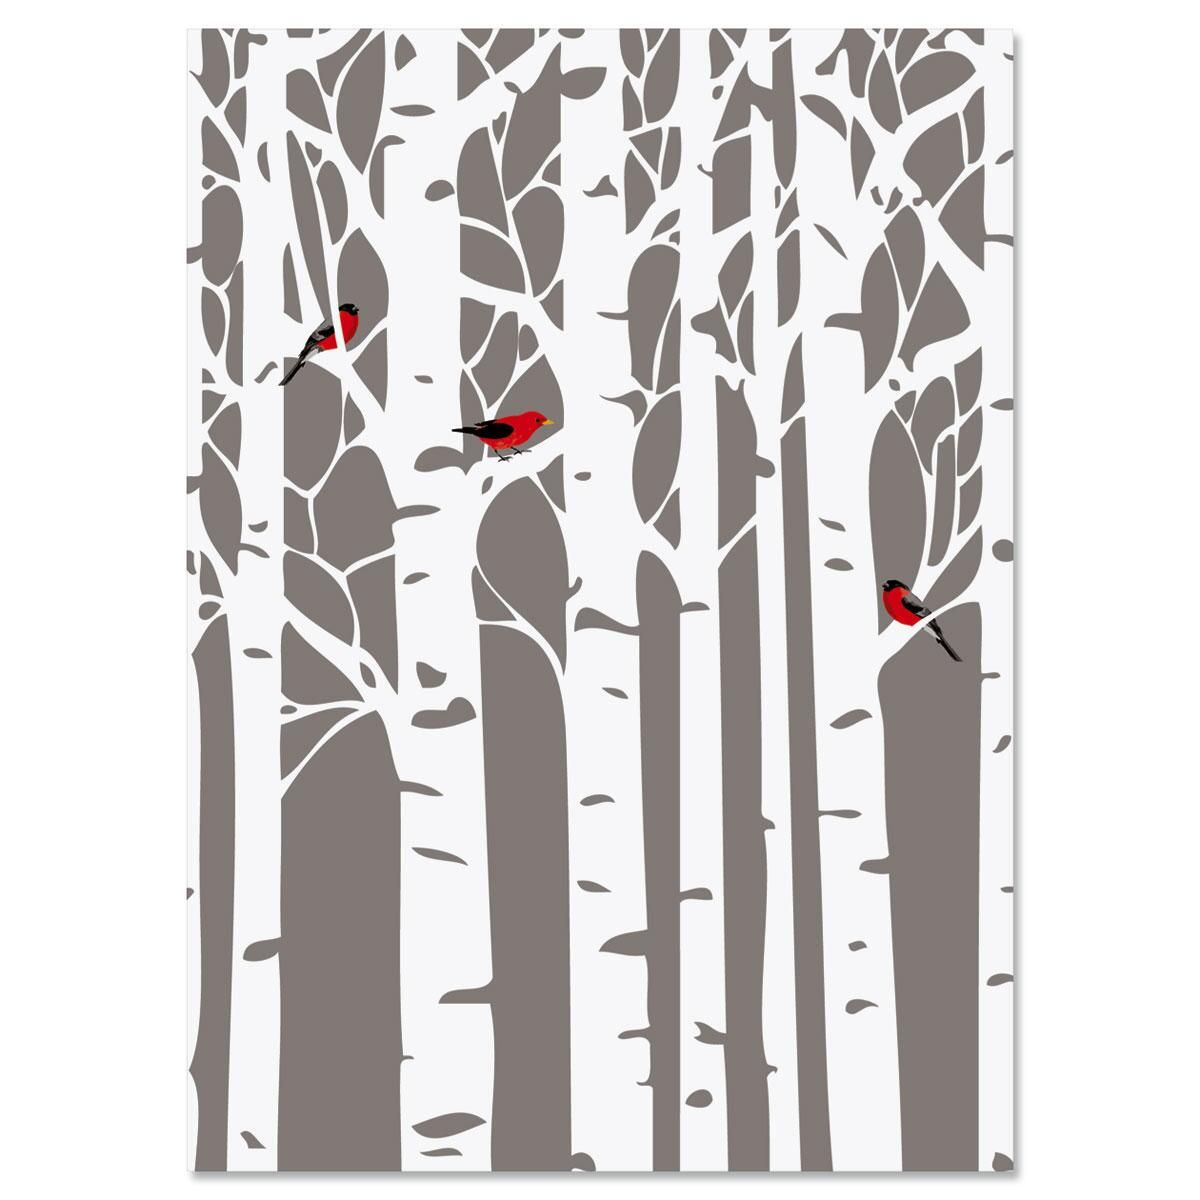 Aspens in Snow Nonpersonalized Christmas Cards - Set of 72